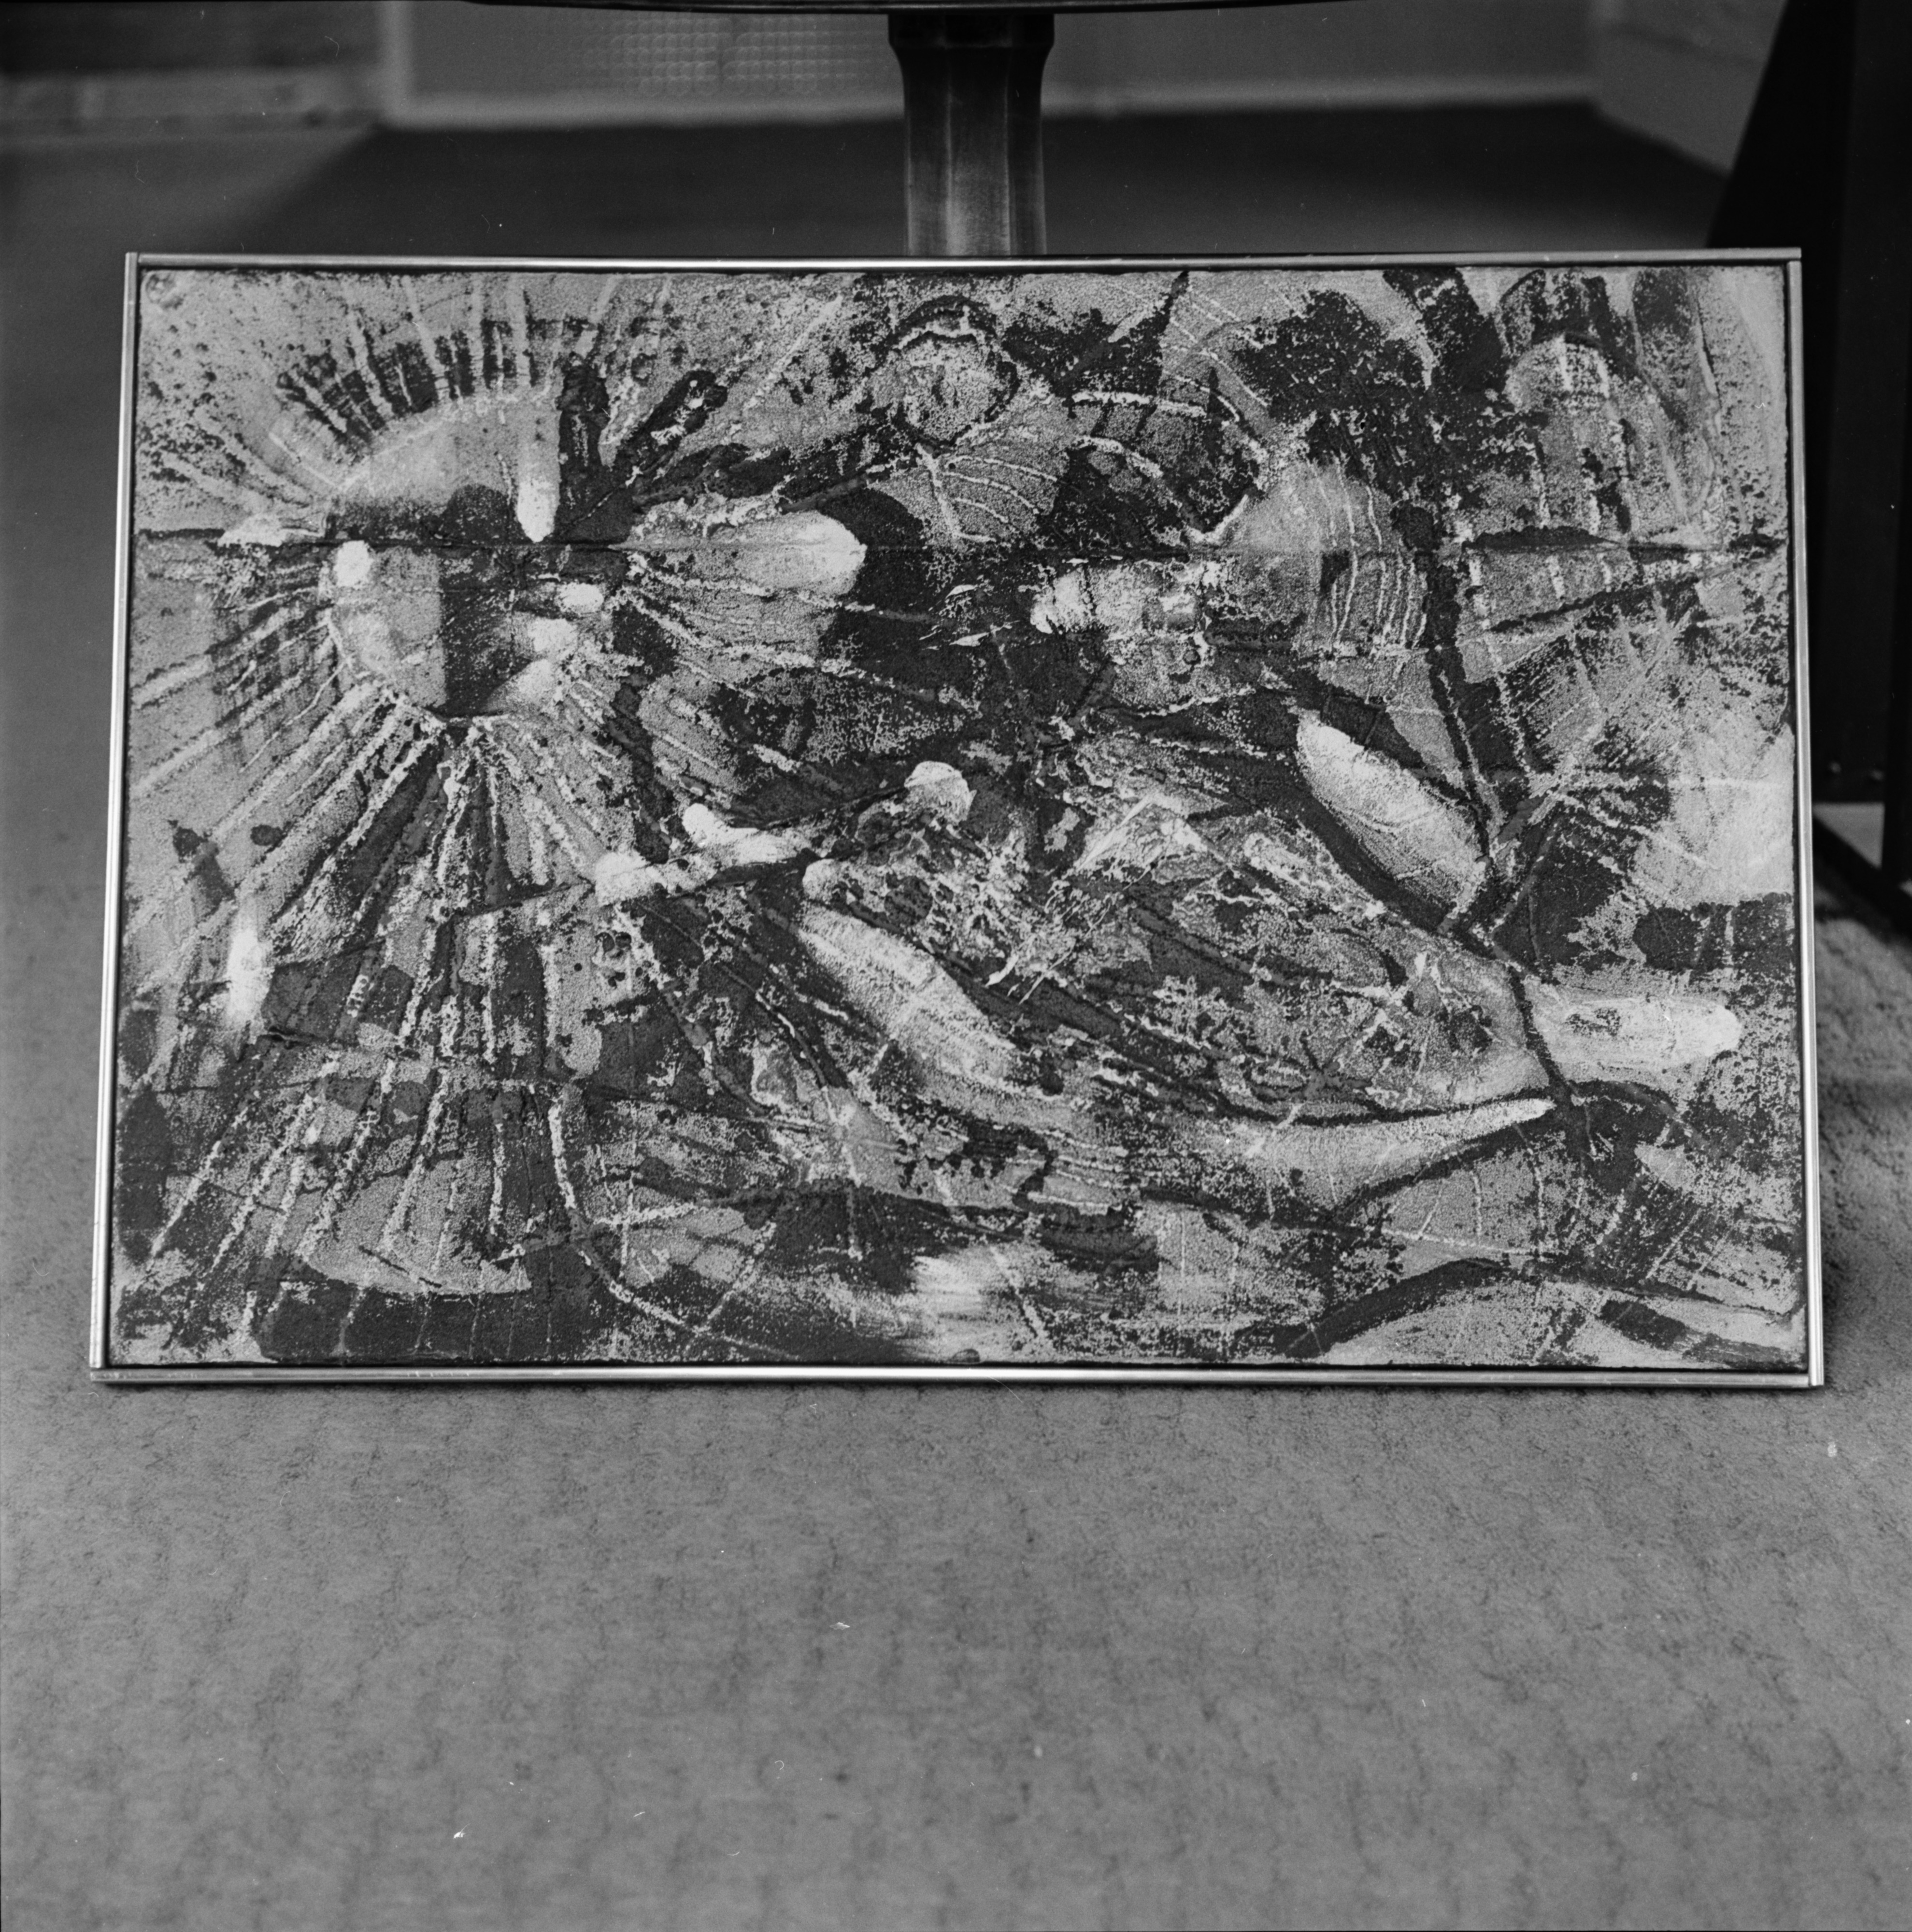 Gerome Kamrowski painting at Lantern Gallery, April 1966 image